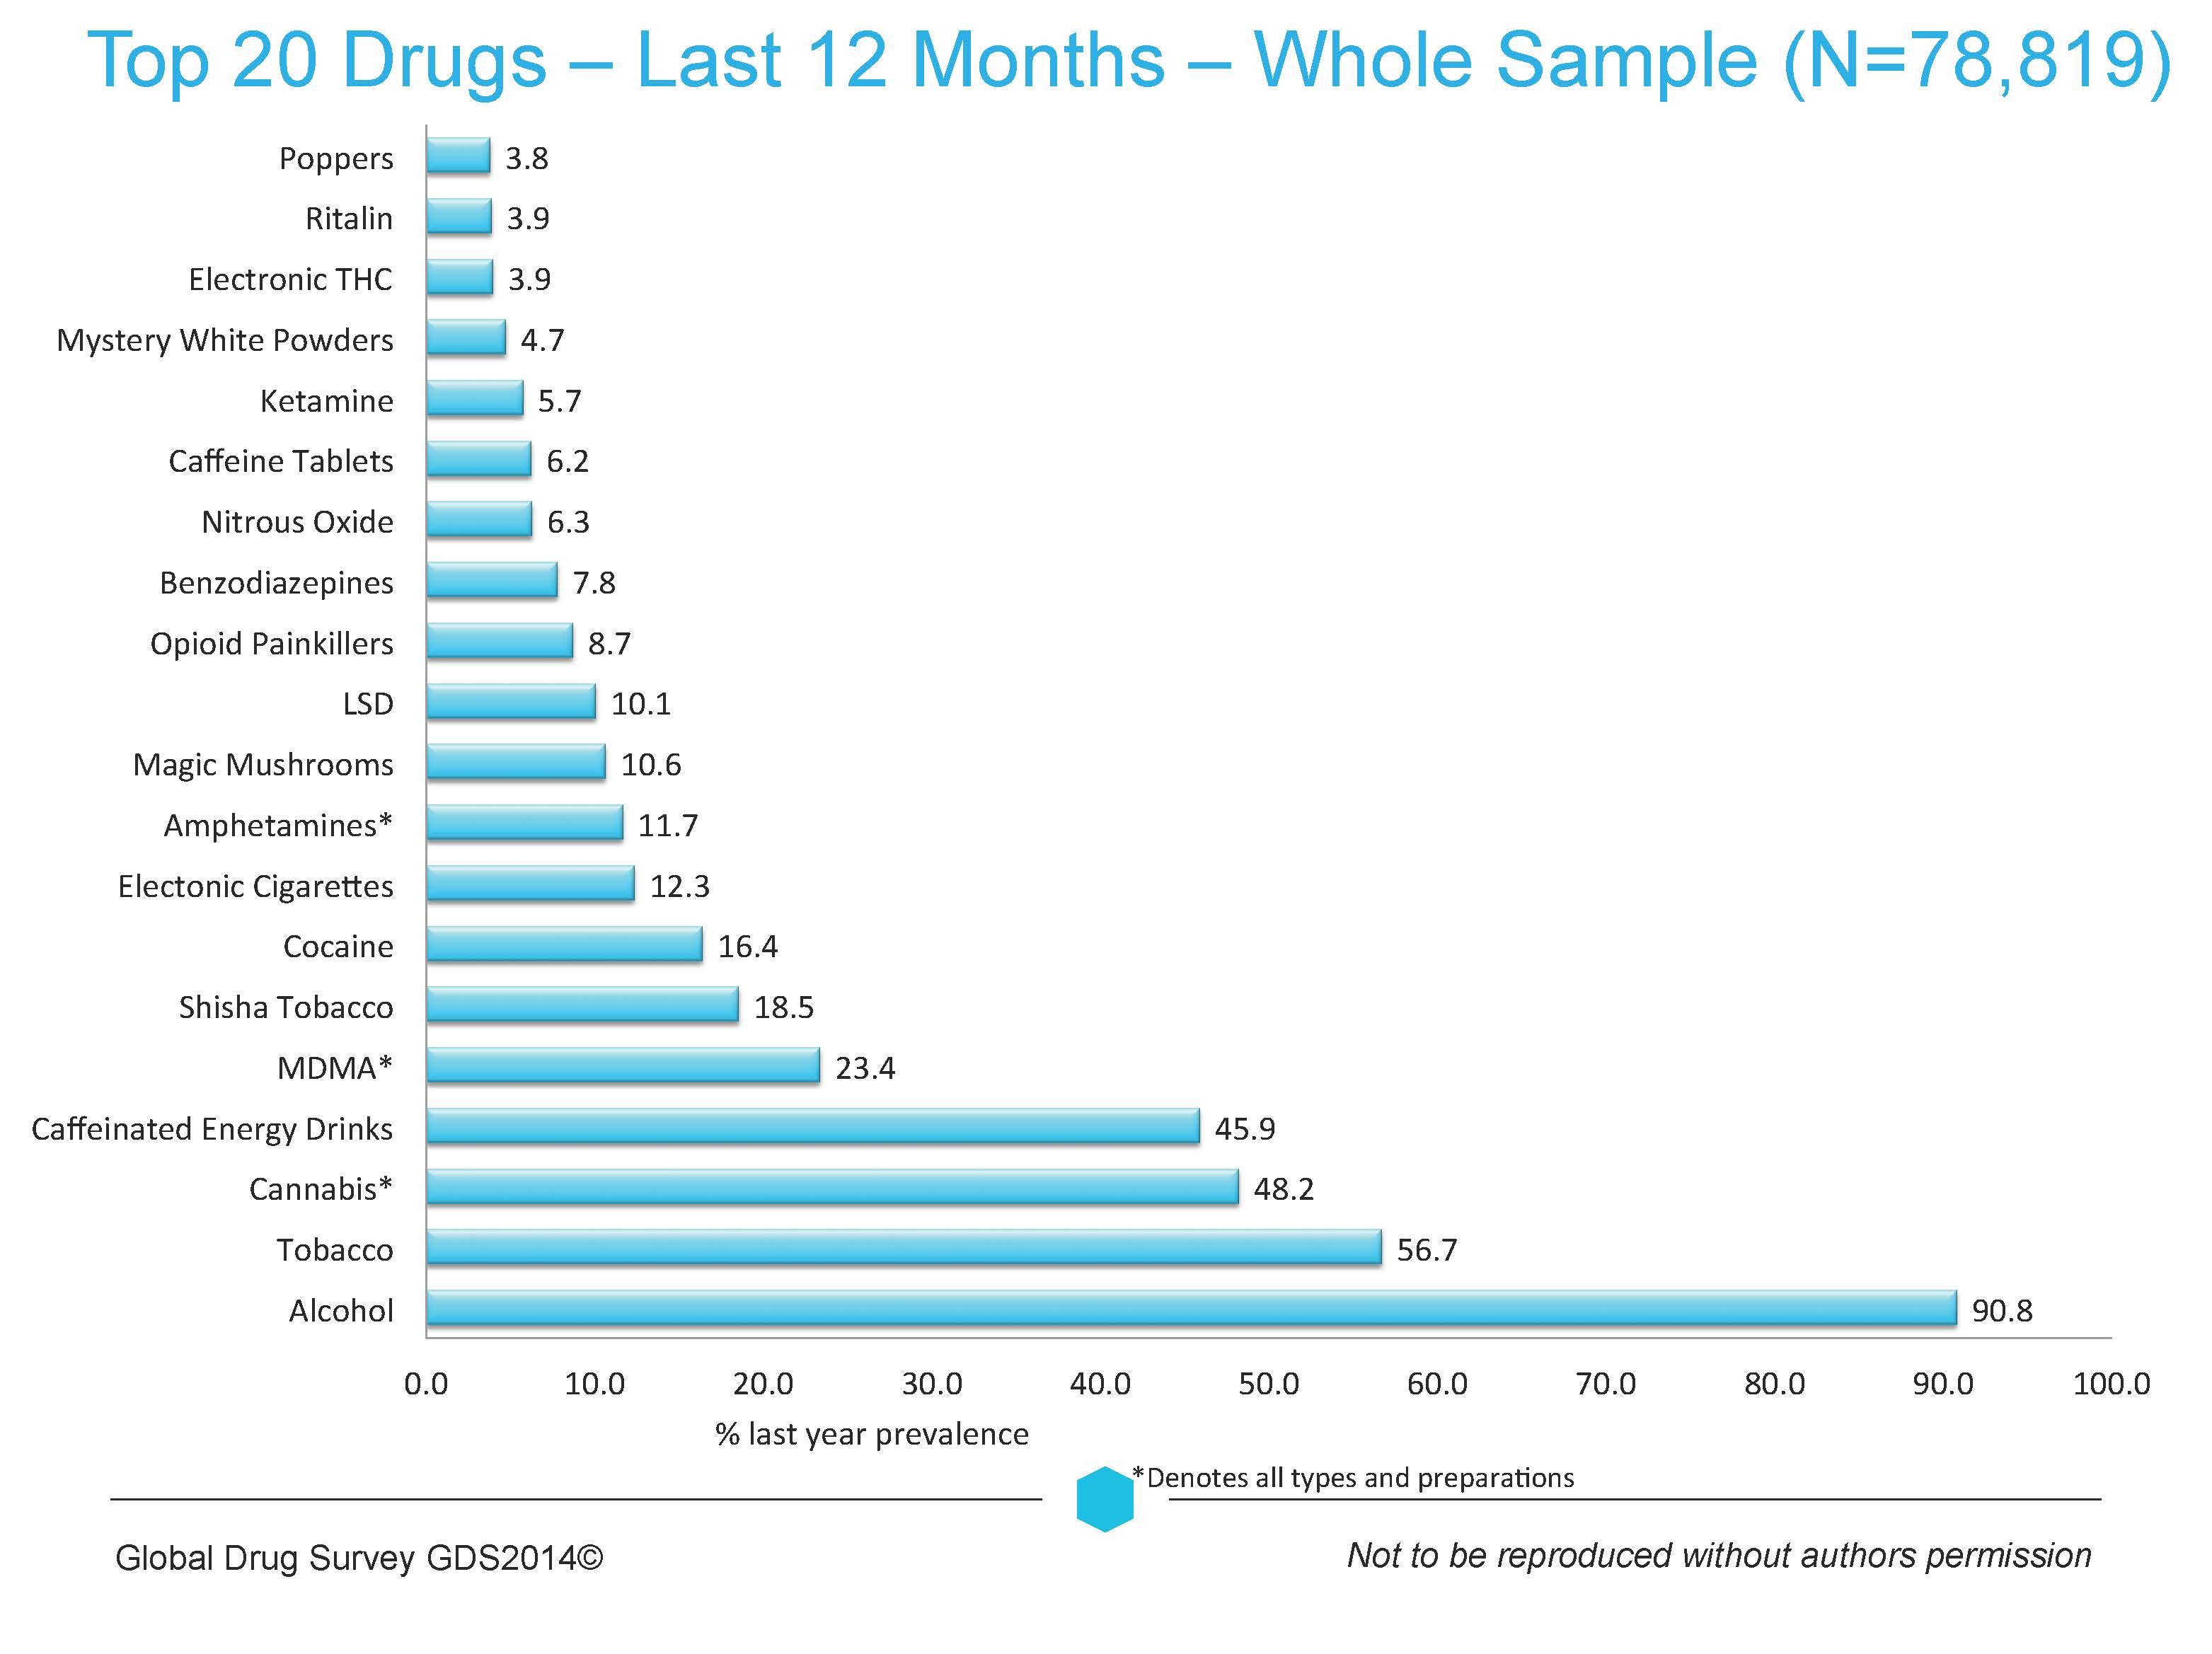 The Global Drug Survey 2014 Findings Global Drug Survey